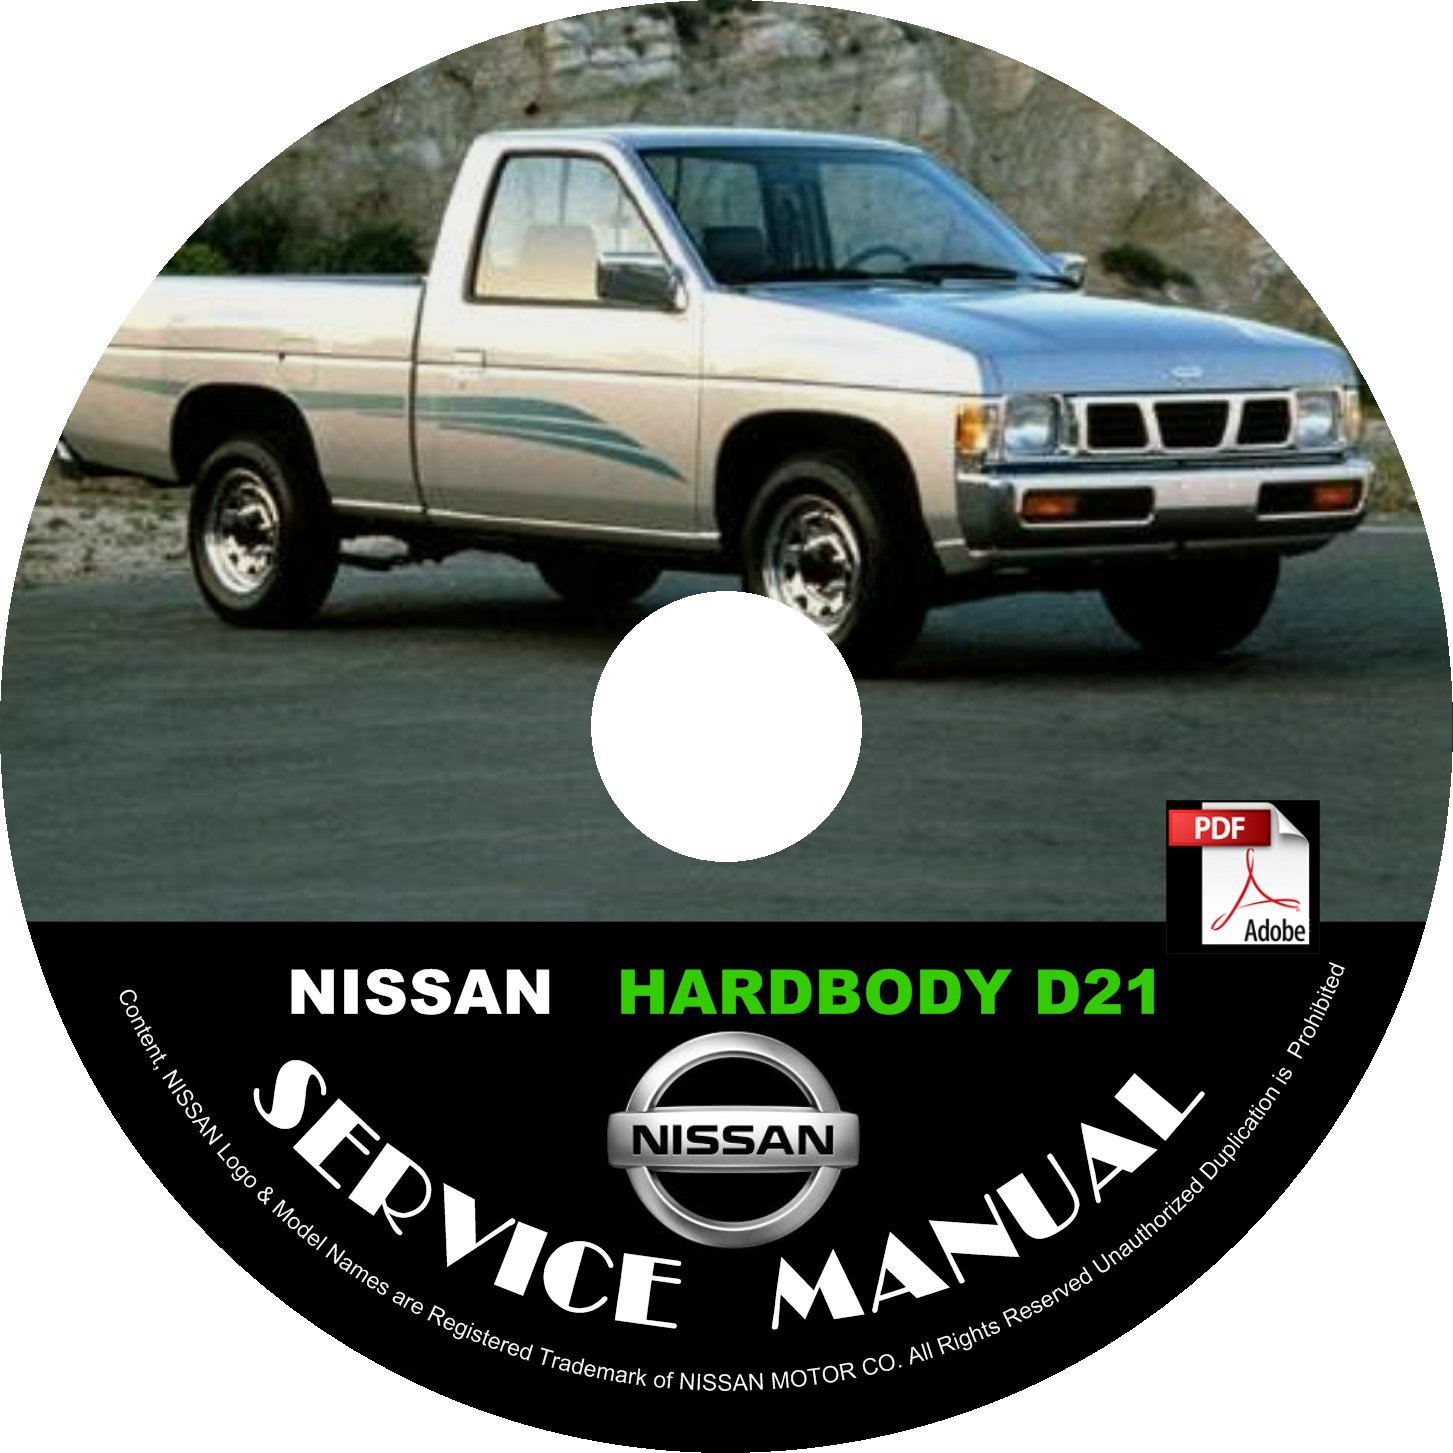 1990 Nissan Hardbody Pickup Service Repair Shop Manual on CD Fix Repair Rebuild '90 Workshop